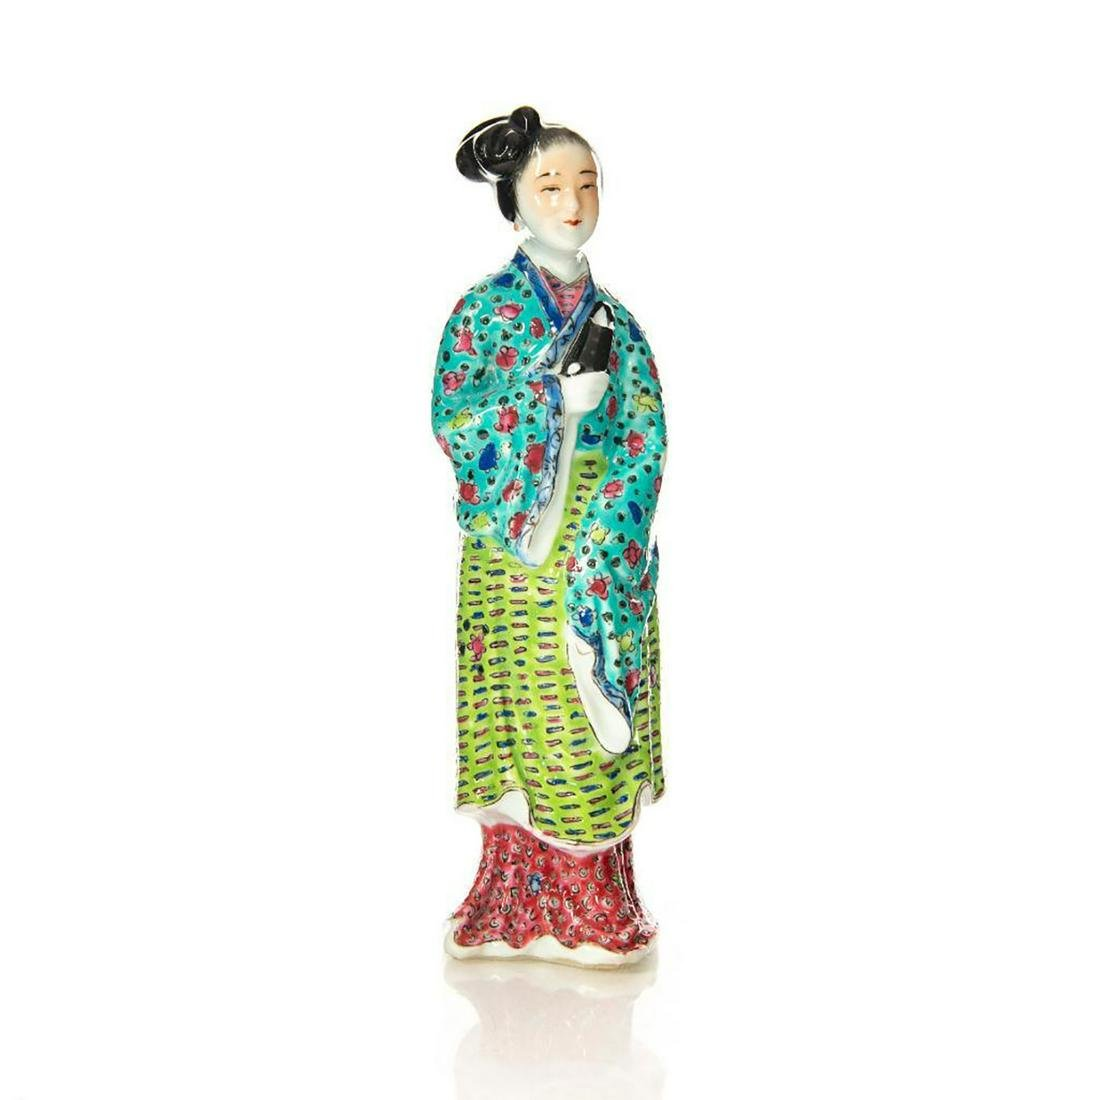 CLASSIC CHINESE CERAMIC FIGURINE OF WOMAN